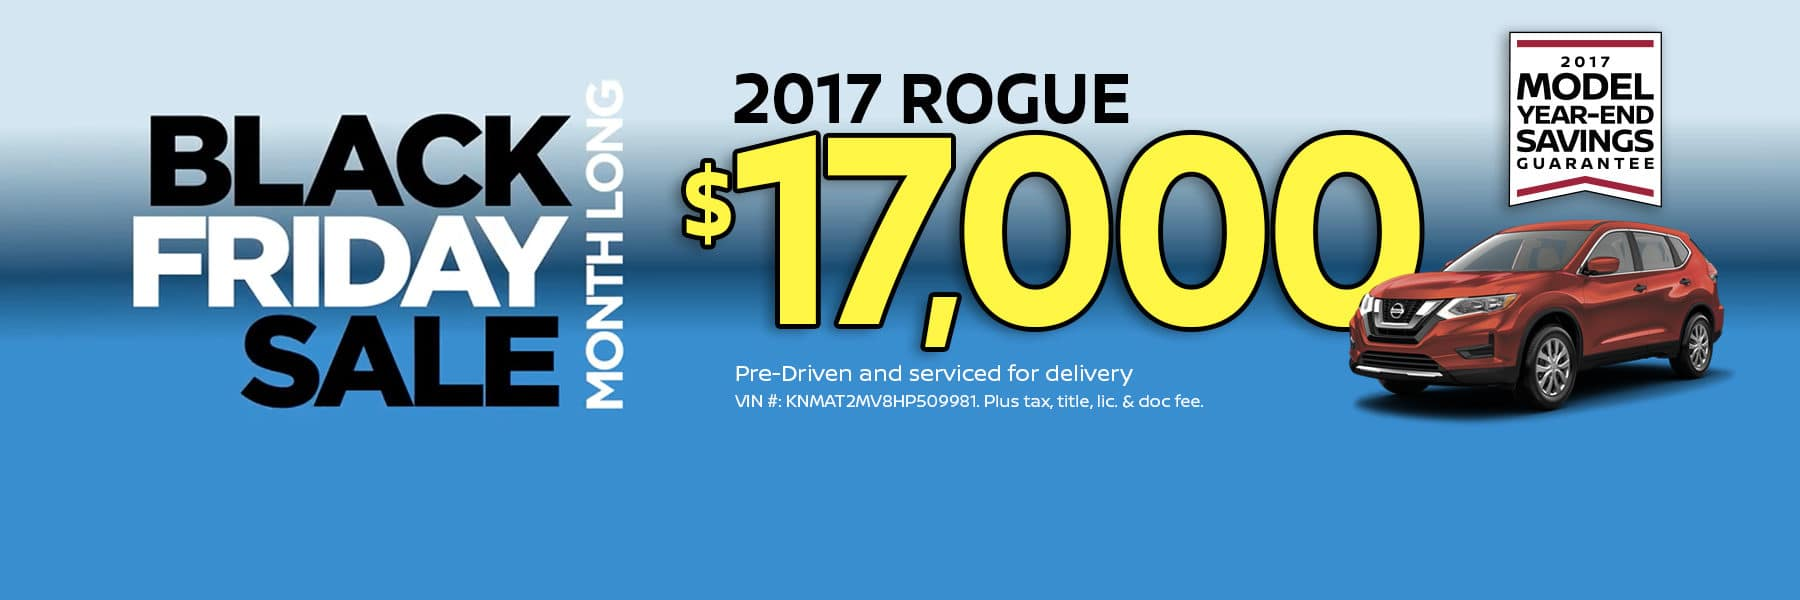 Black Friday Sale 2017 Nissan Rogue for $17,000!